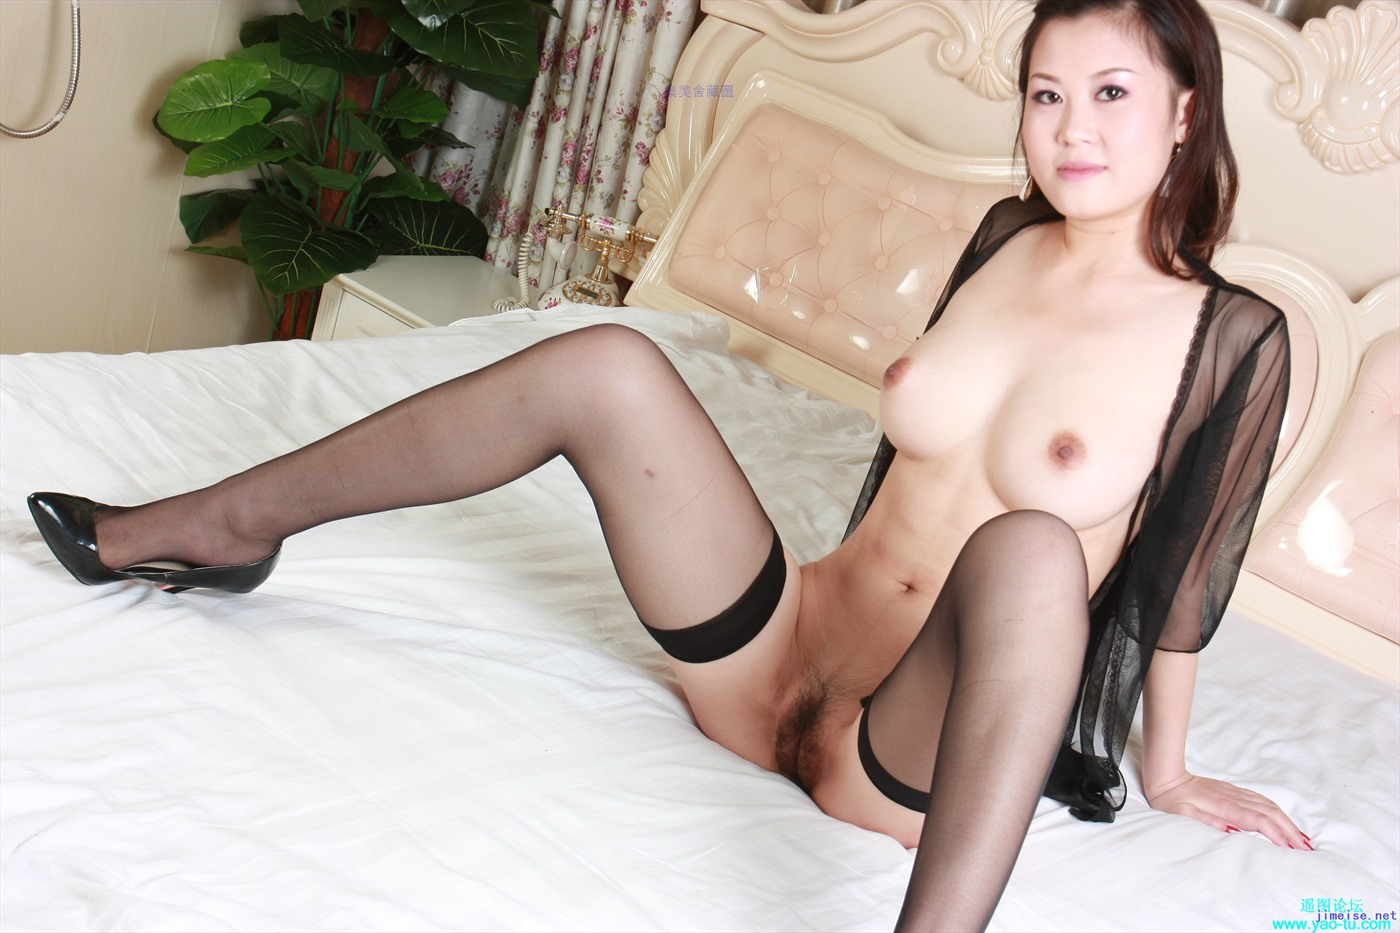 Erotic nude photos of chinese women